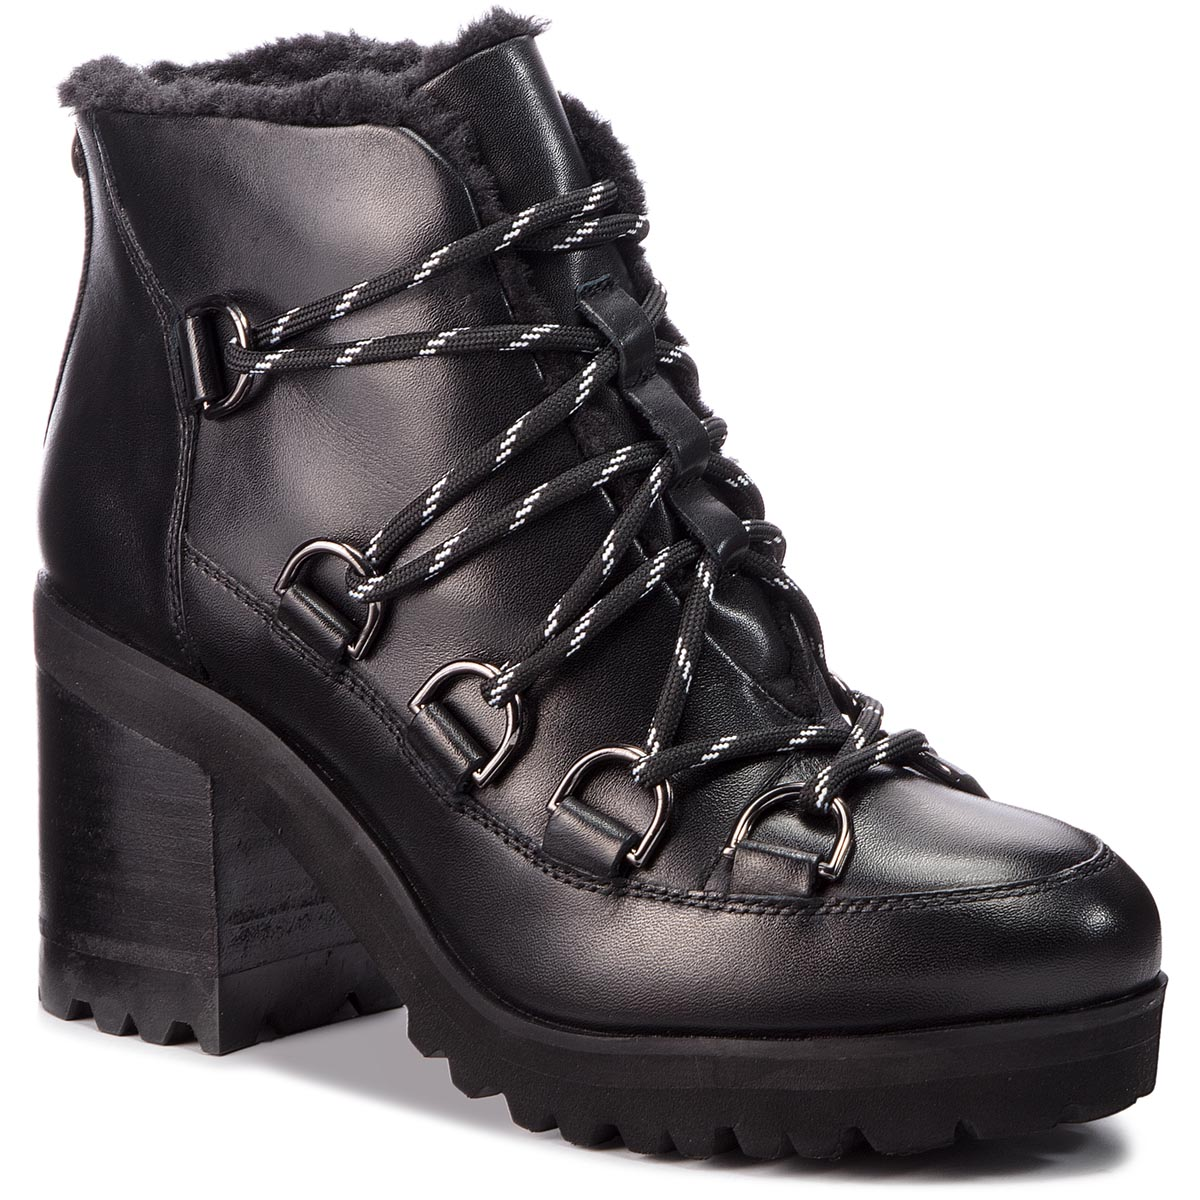 Botine STEVE MADDEN - Zana Biker Boot SM11000236-03001-017 Black Leather